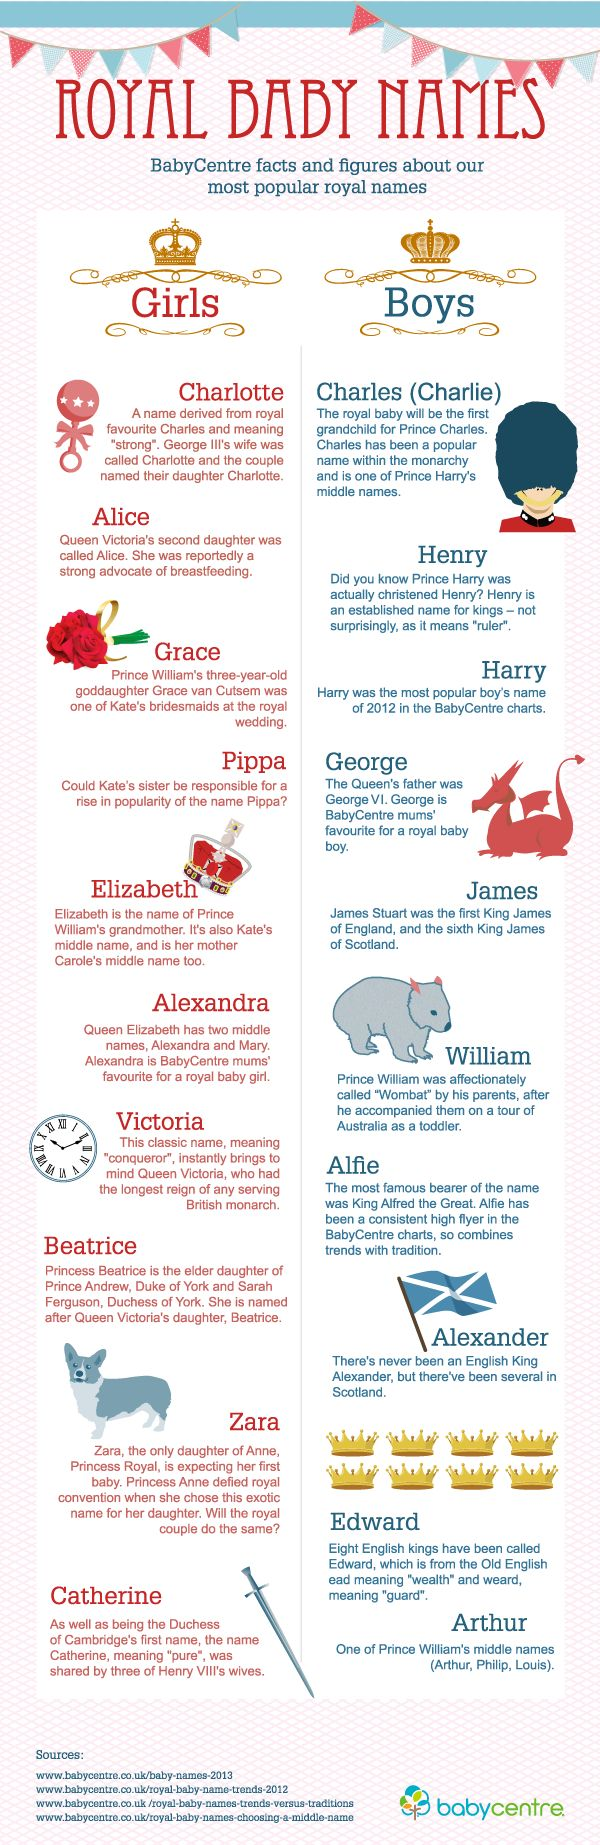 Royal baby names infographic - the history behind the most common royal names